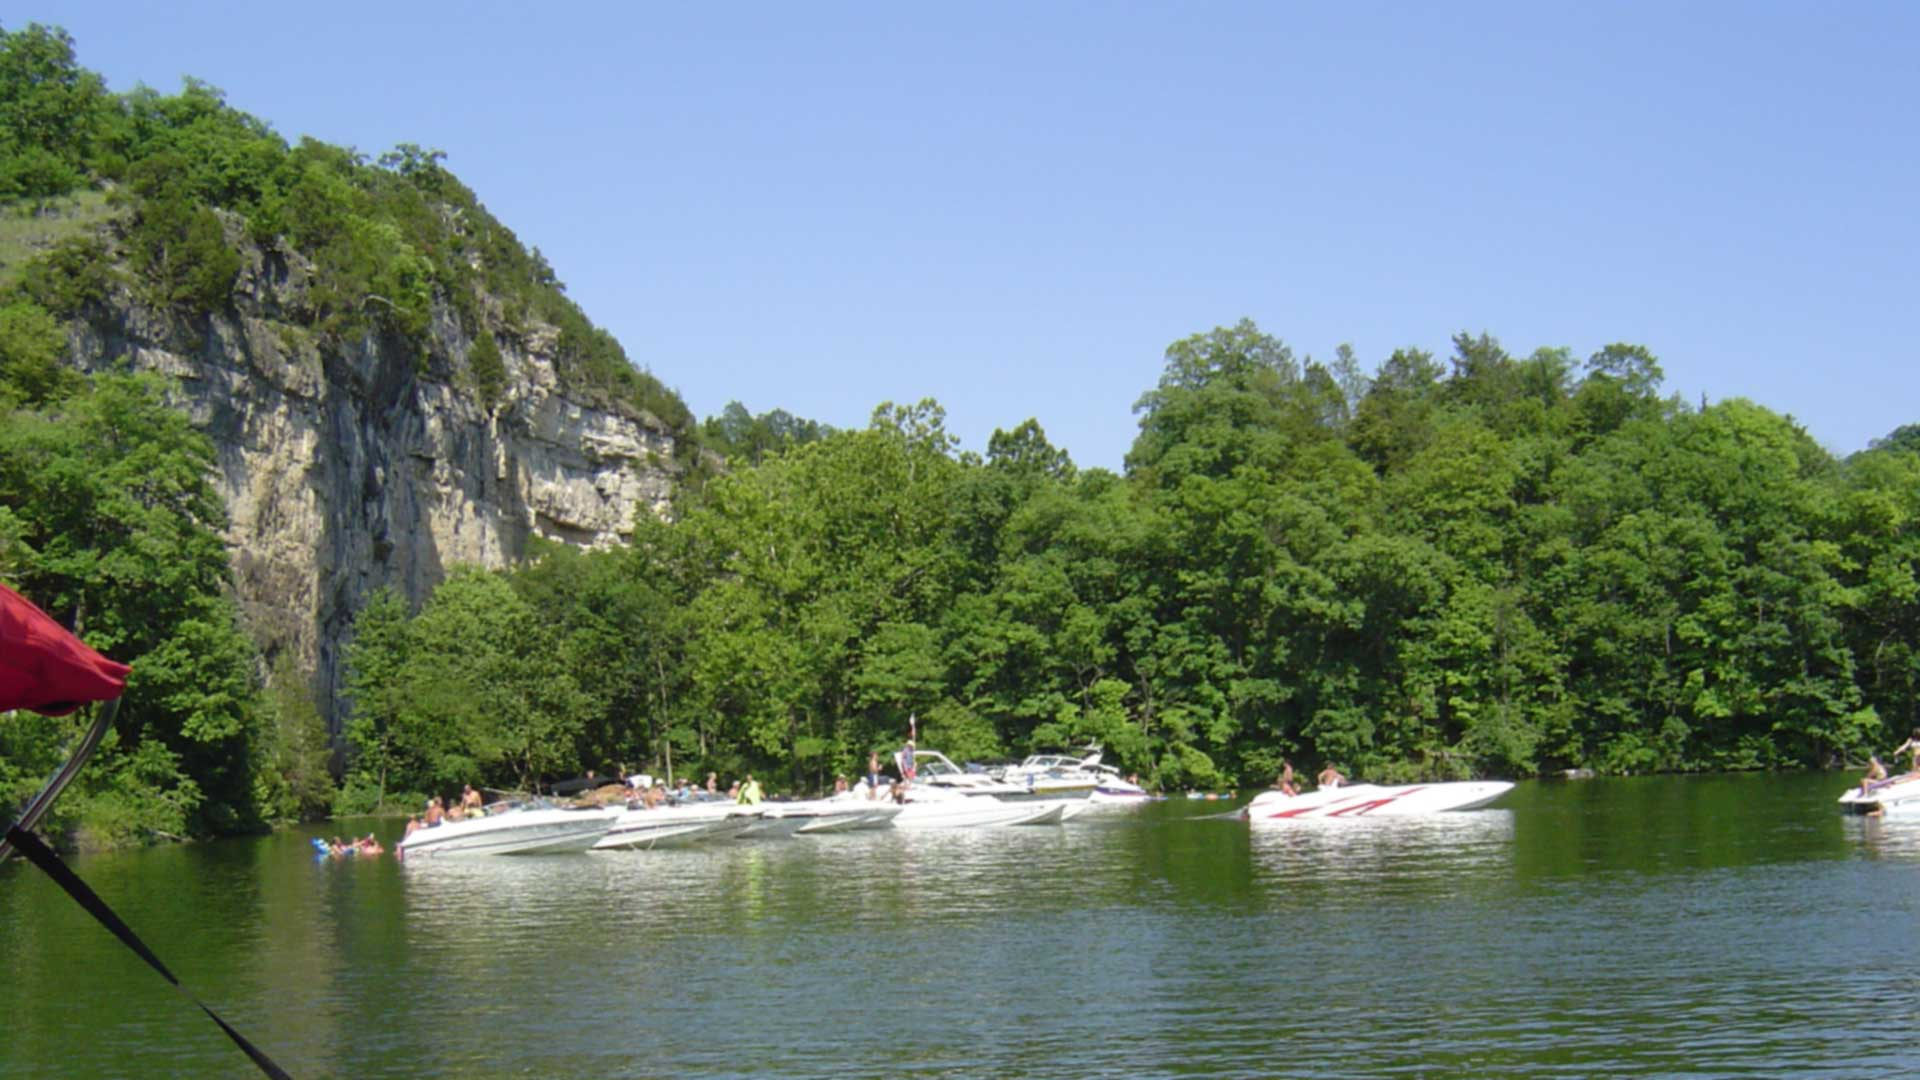 Boats on Lake of the Ozarks